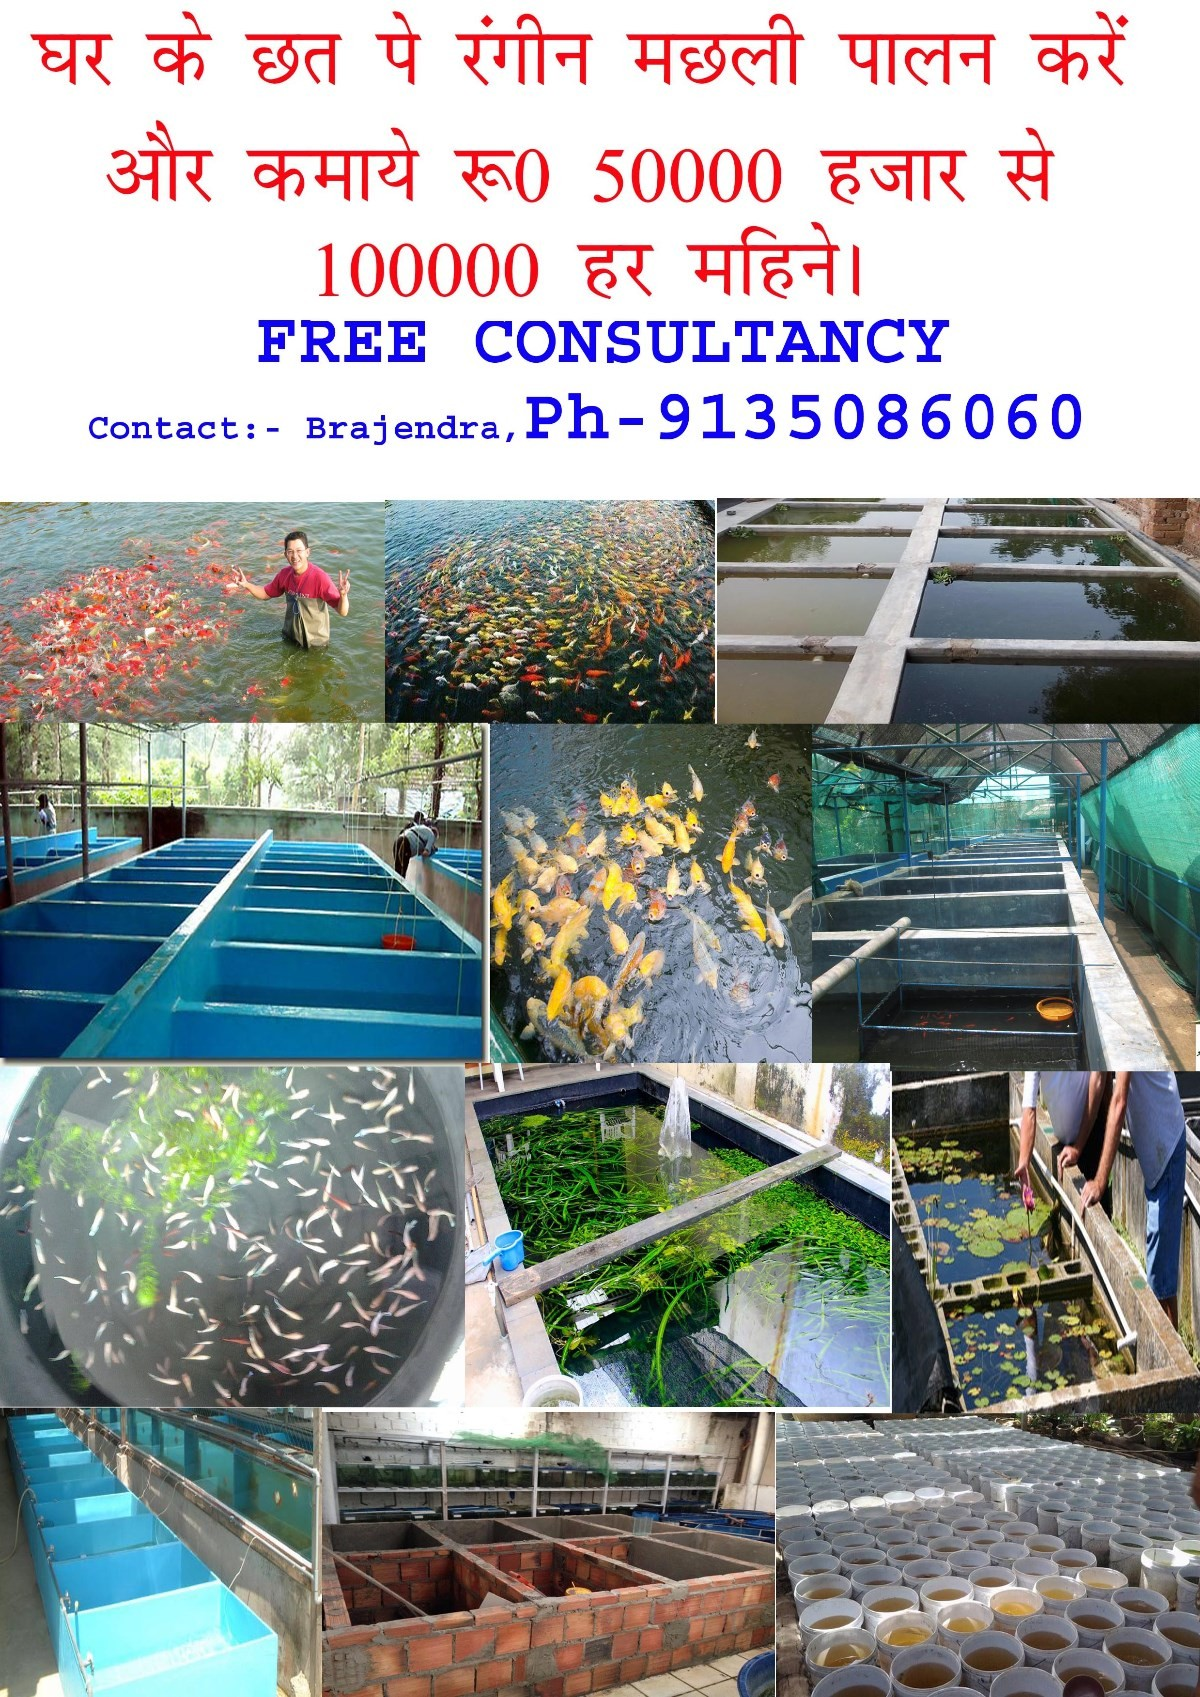 Fish aquarium in vadodara - Fish Farming Consultancy